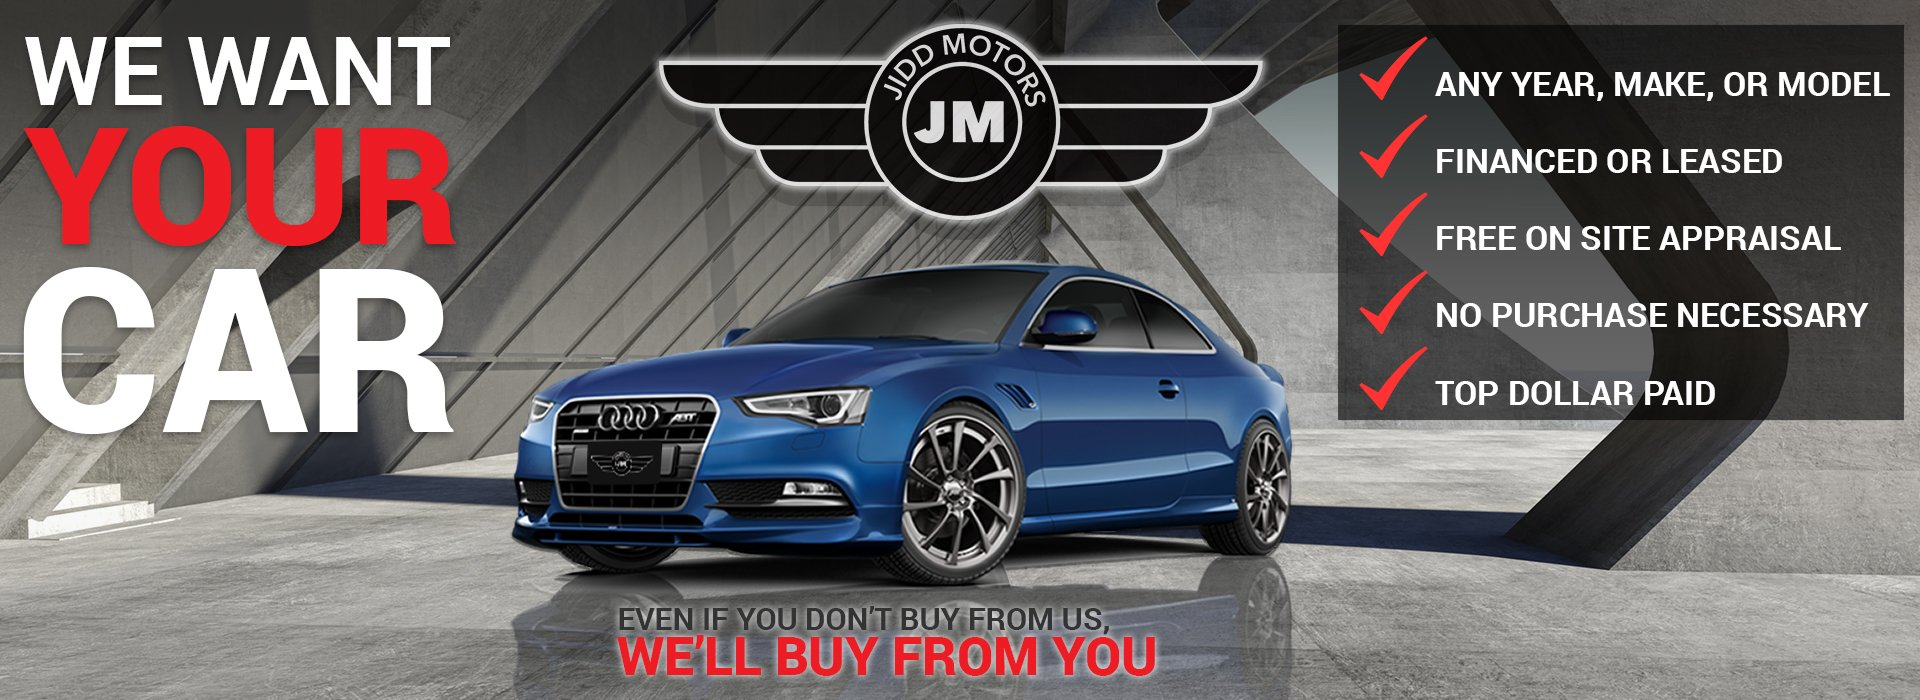 Luxury Used Cars Chicago, IL | Imports and Domestics - Jidd Motors